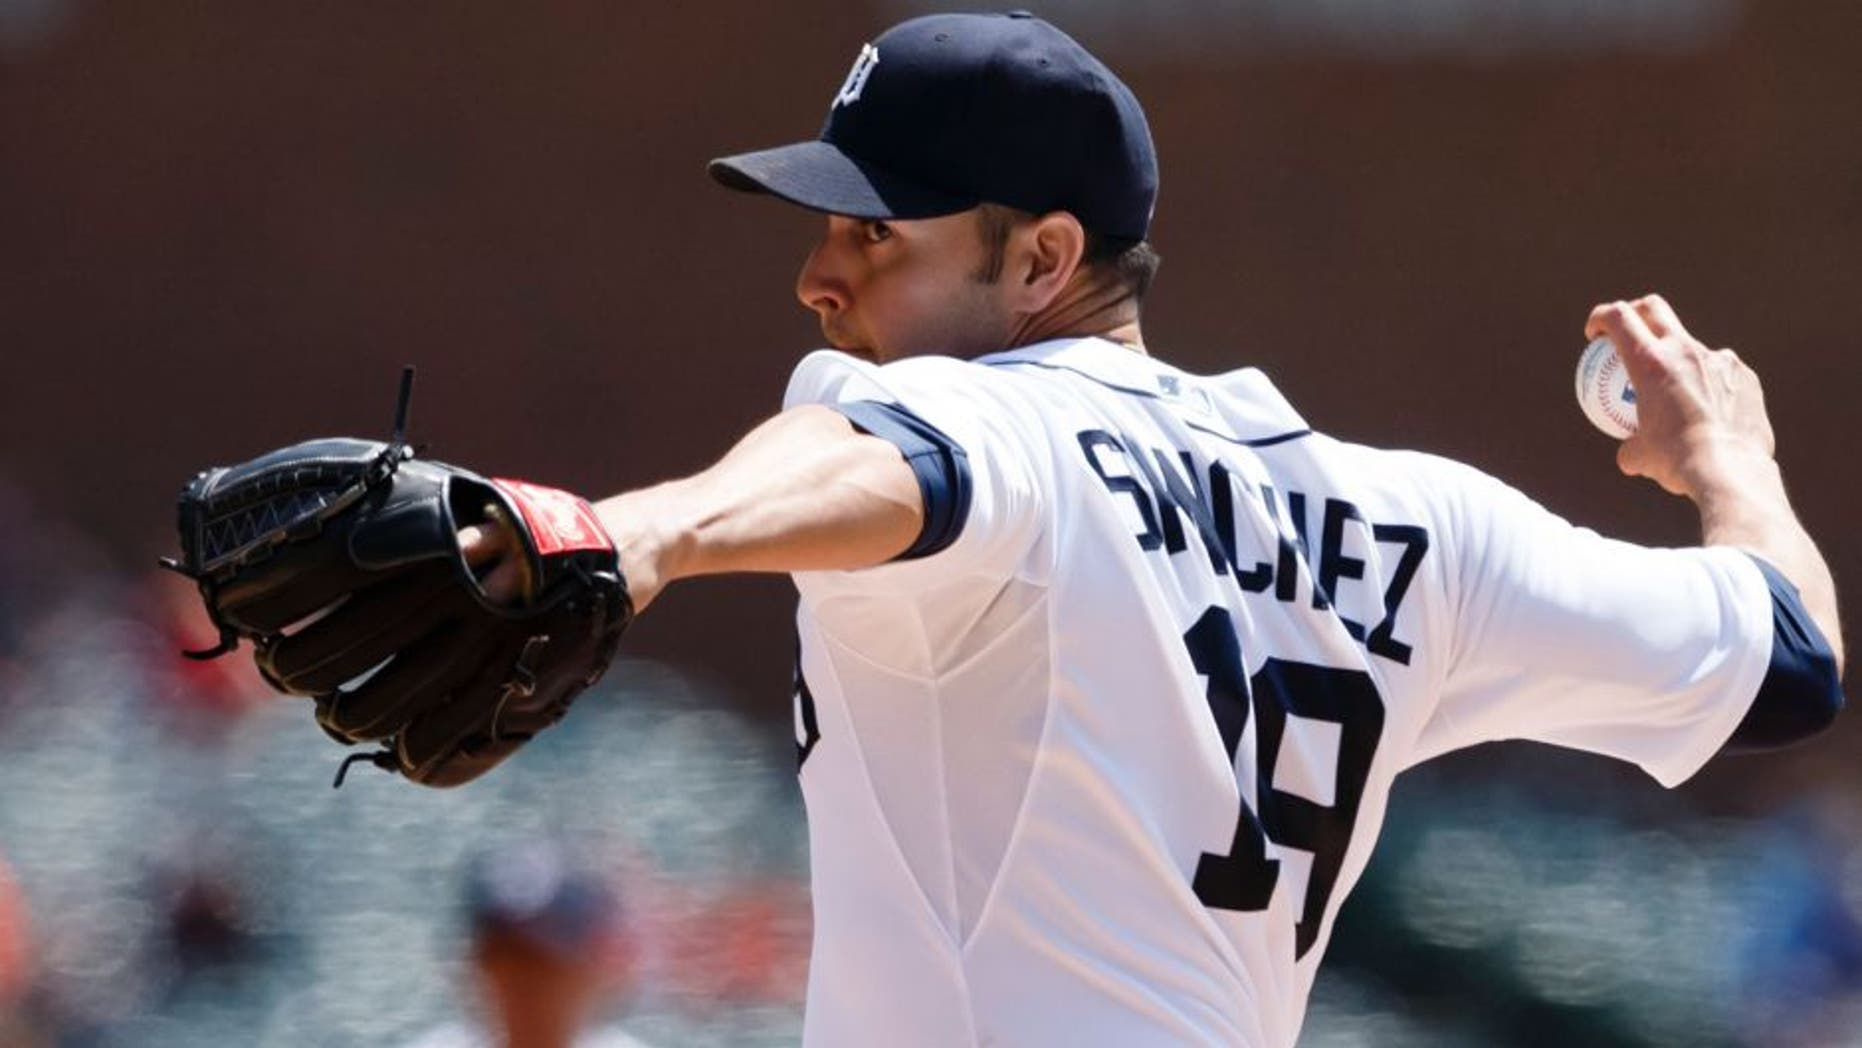 May 14, 2015; Detroit, MI, USA; Detroit Tigers starting pitcher Anibal Sanchez (19) pitches in the first inning against the Minnesota Twins at Comerica Park. Mandatory Credit: Rick Osentoski-USA TODAY Sports